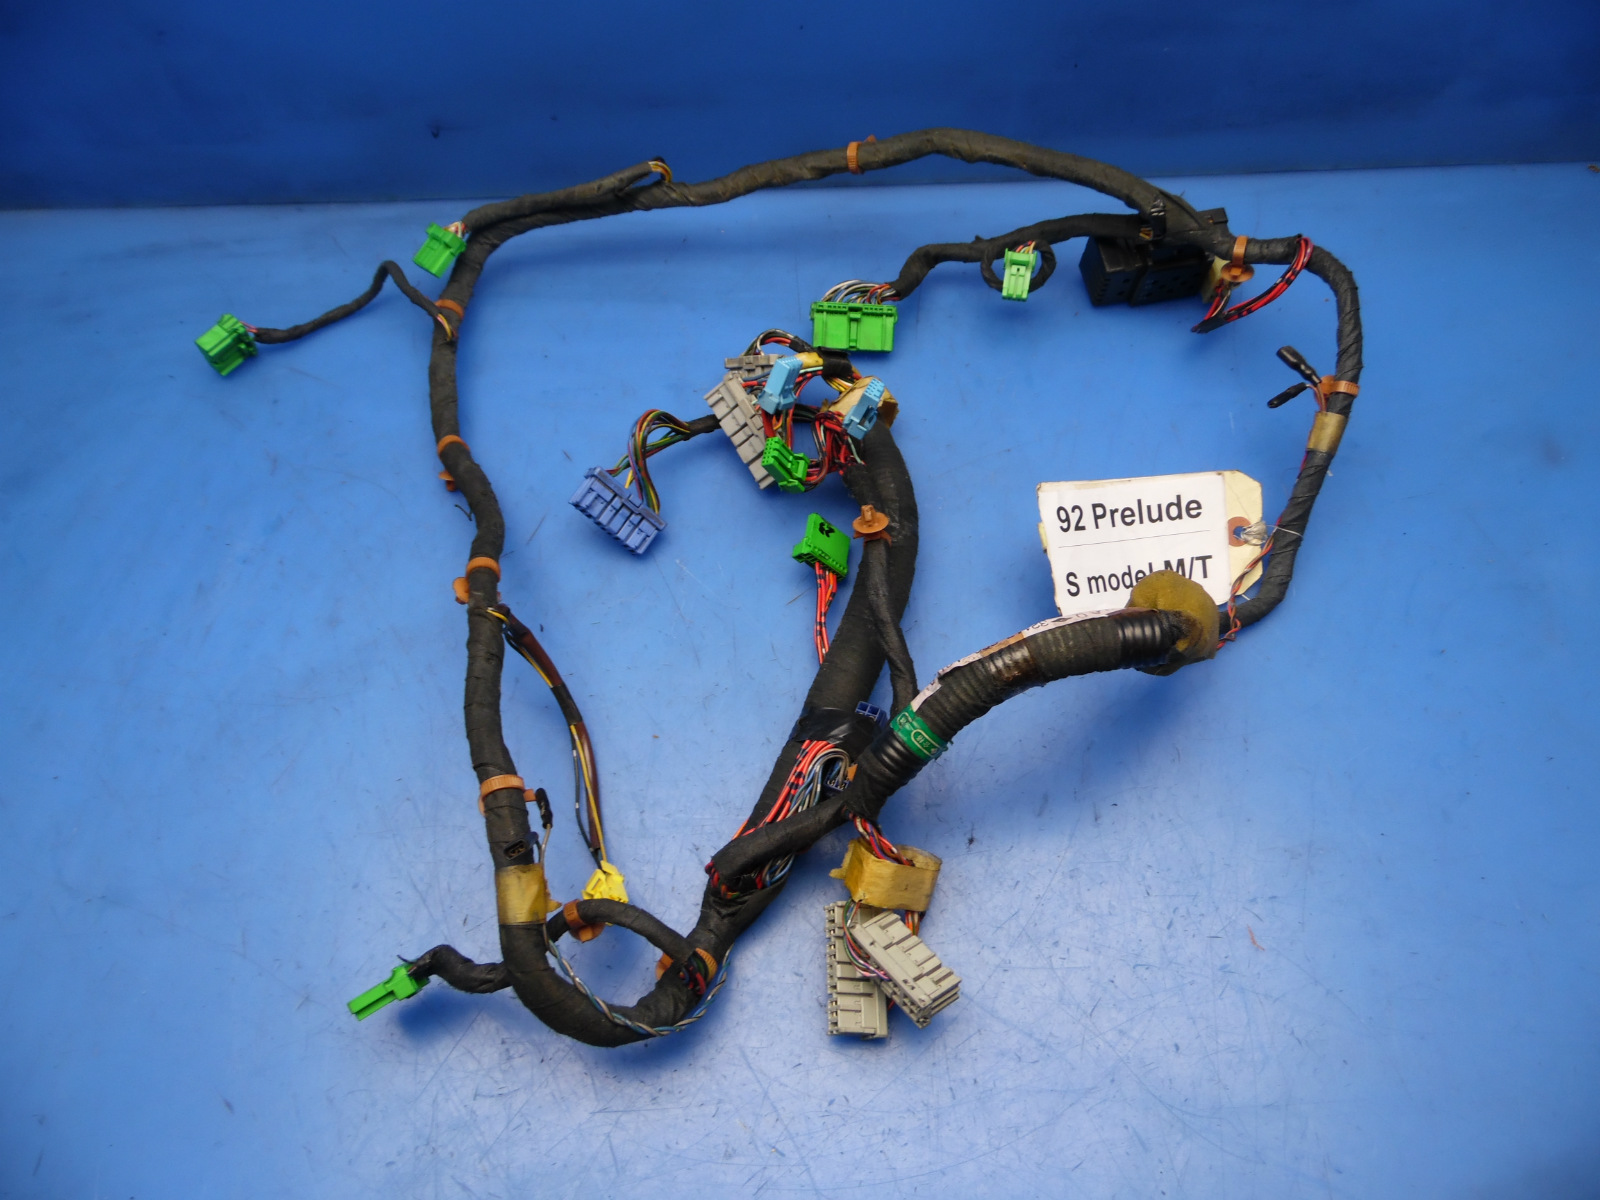 hight resolution of 92 93 prelude oem radio dash gauge cluster wiring harness mt 32117 ss0 a004